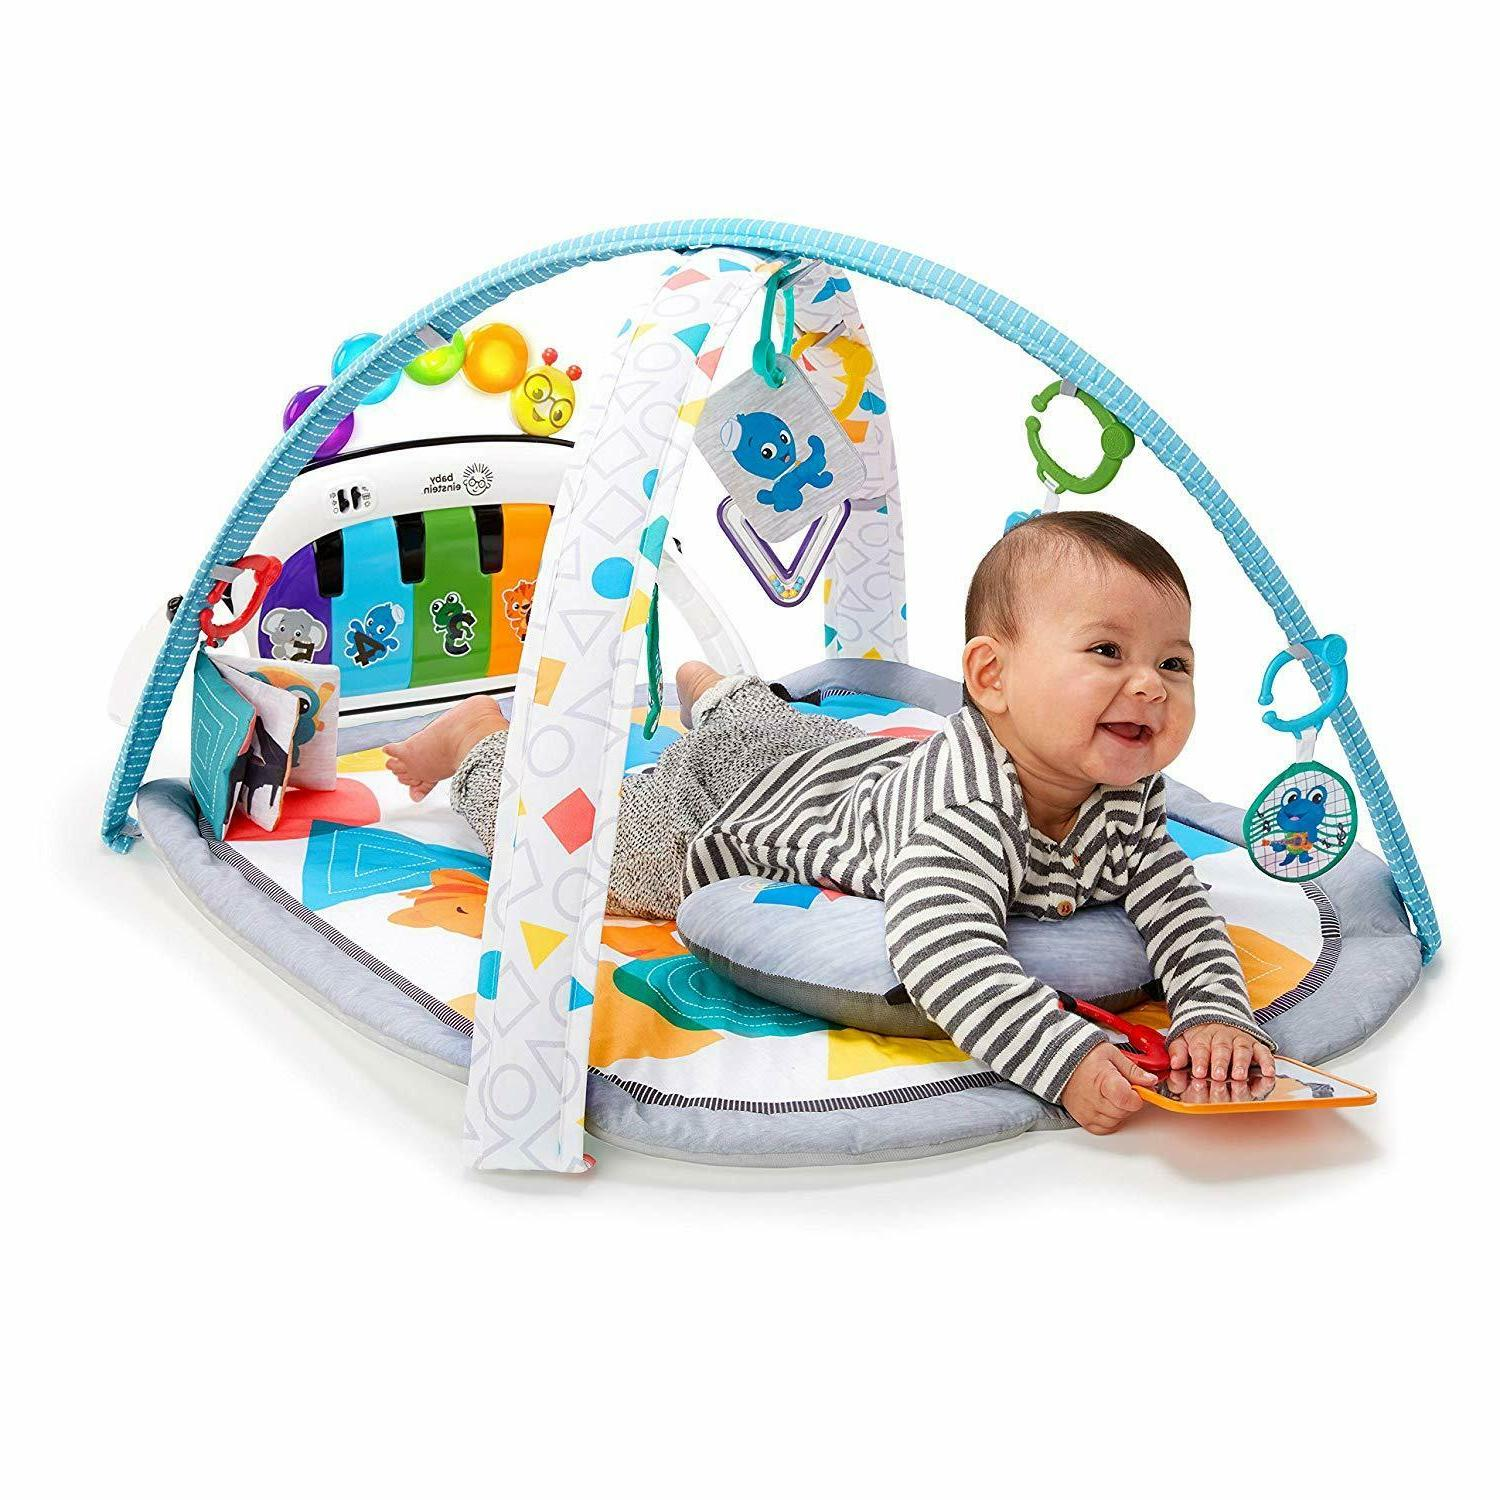 Baby 4-in-1 Tunes Gym Play Mat